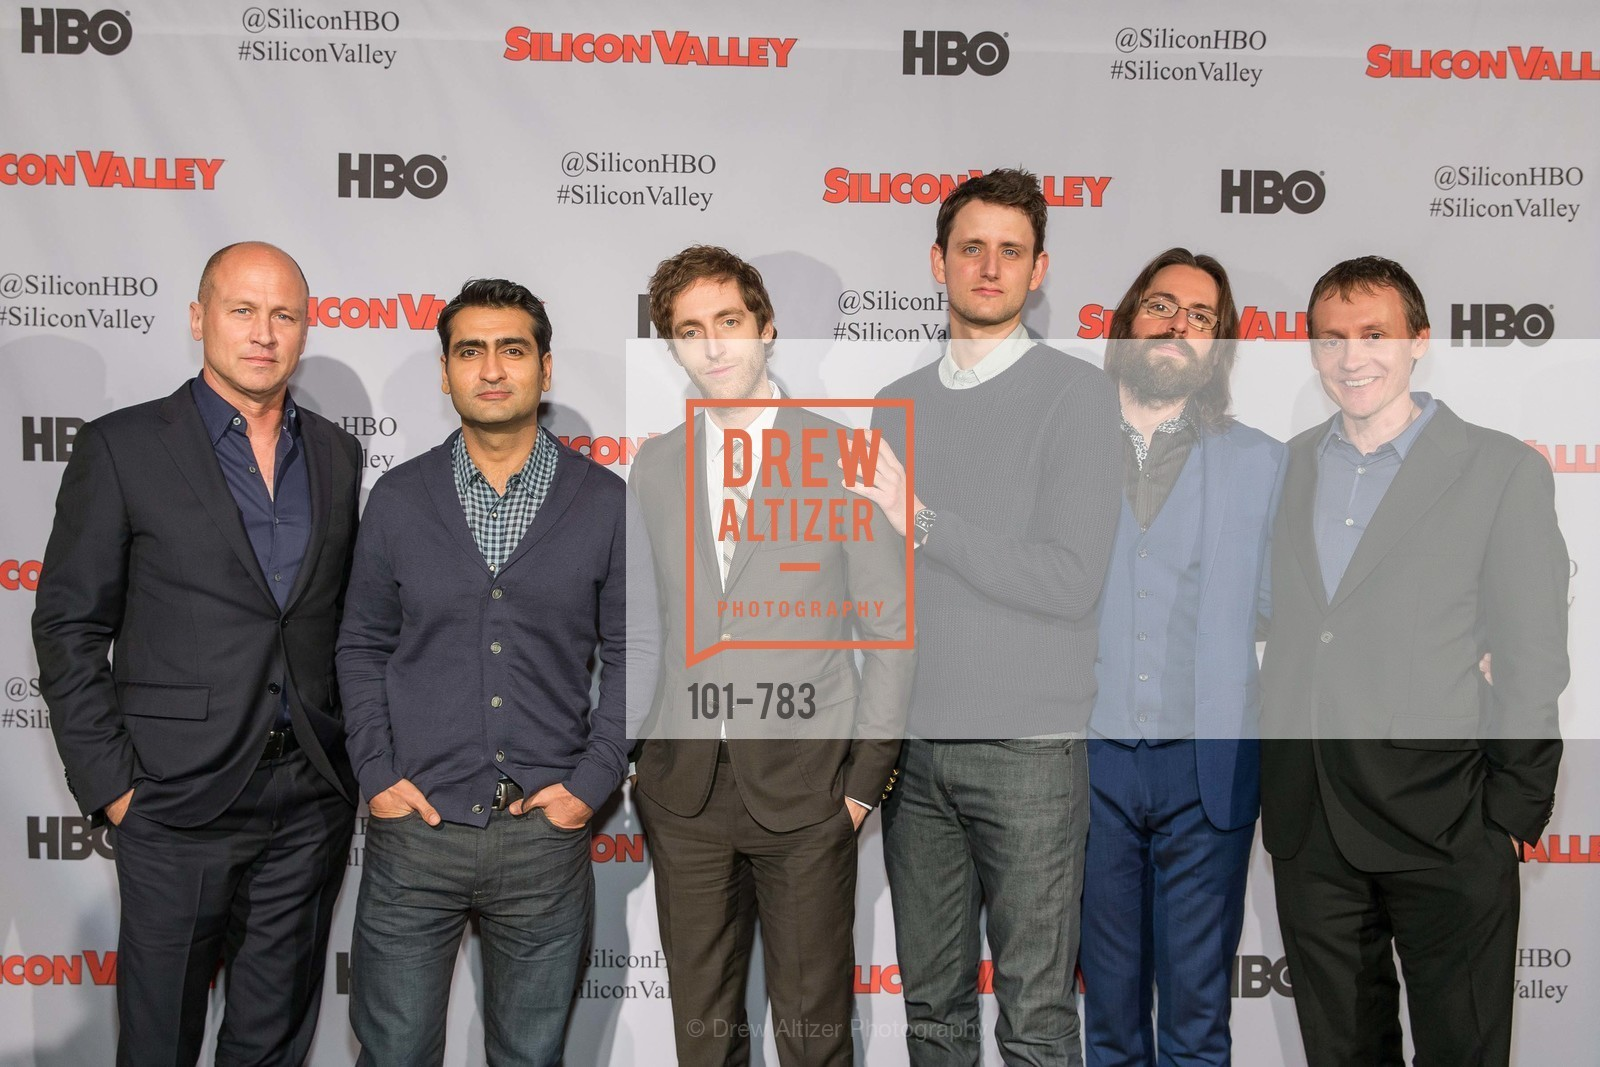 Mike Judge, Kumail Nanjiani, Thomas Middleditch, Zach Woods, Martin Starr, Alec Berg, HBO'S SILICON VALLEY San Francisco Screening, US, April 9th, 2015,Drew Altizer, Drew Altizer Photography, full-service agency, private events, San Francisco photographer, photographer california